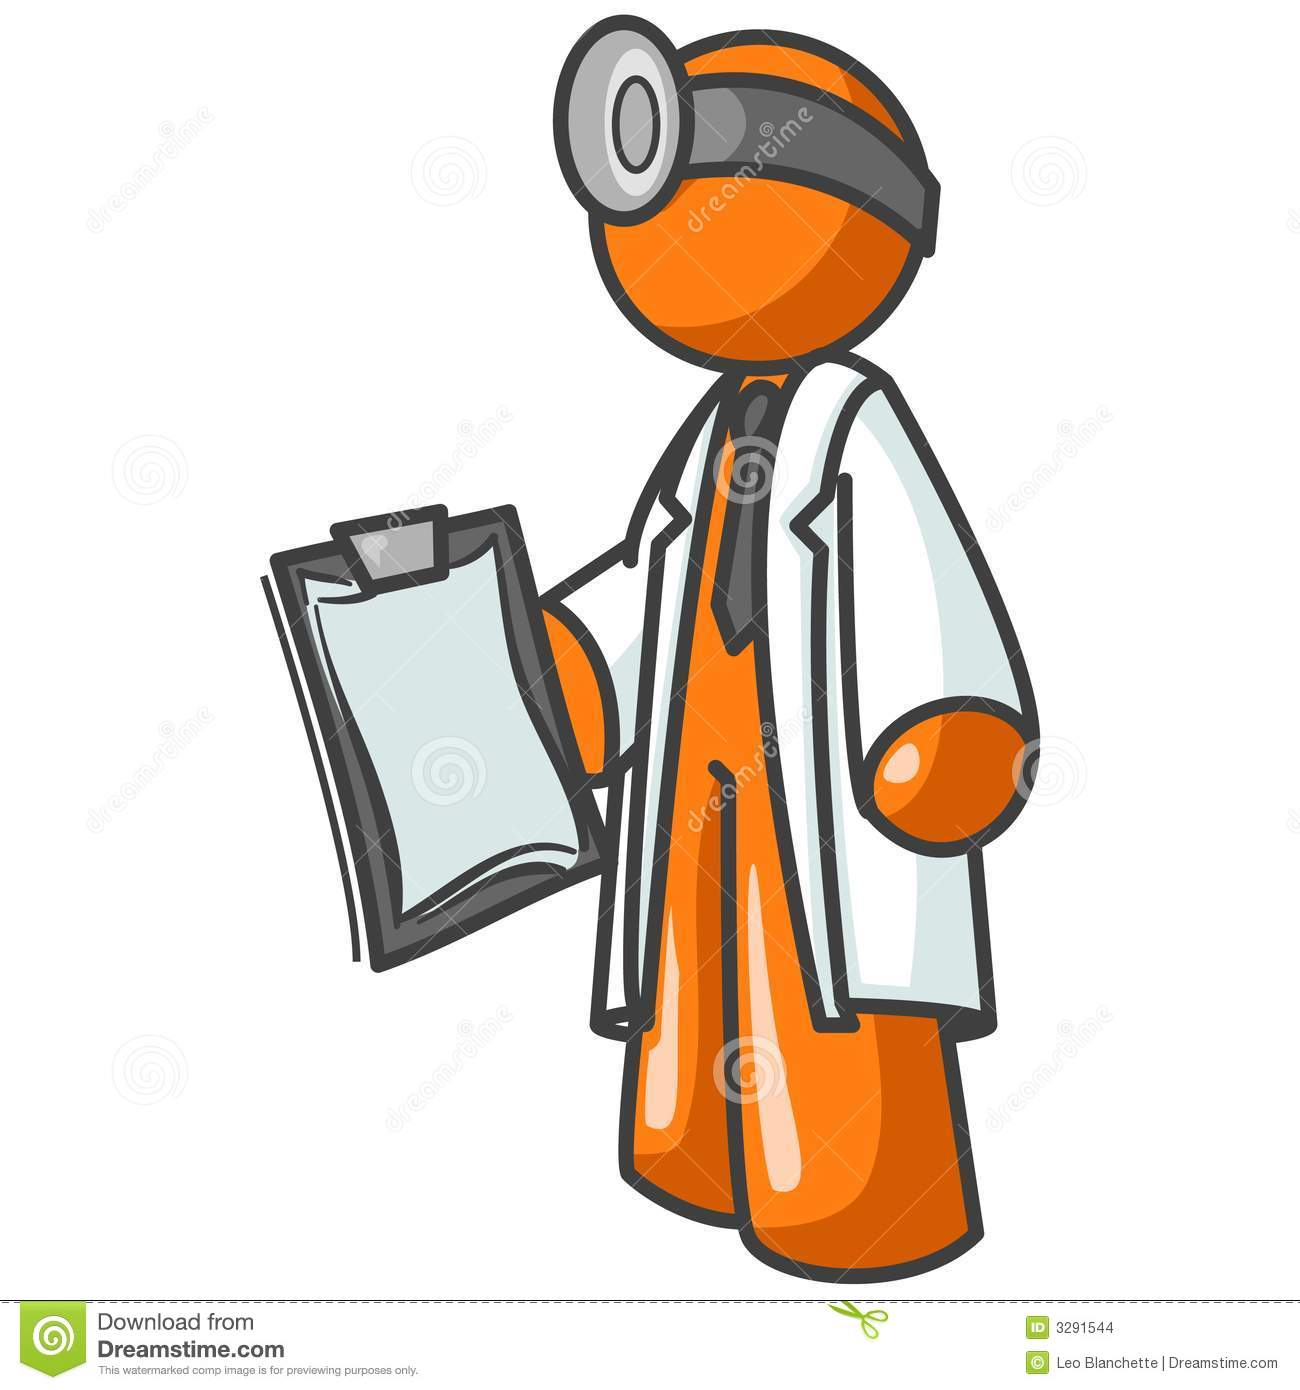 Docteur dessin anim orange d 39 homme images stock image - Orange dessin ...